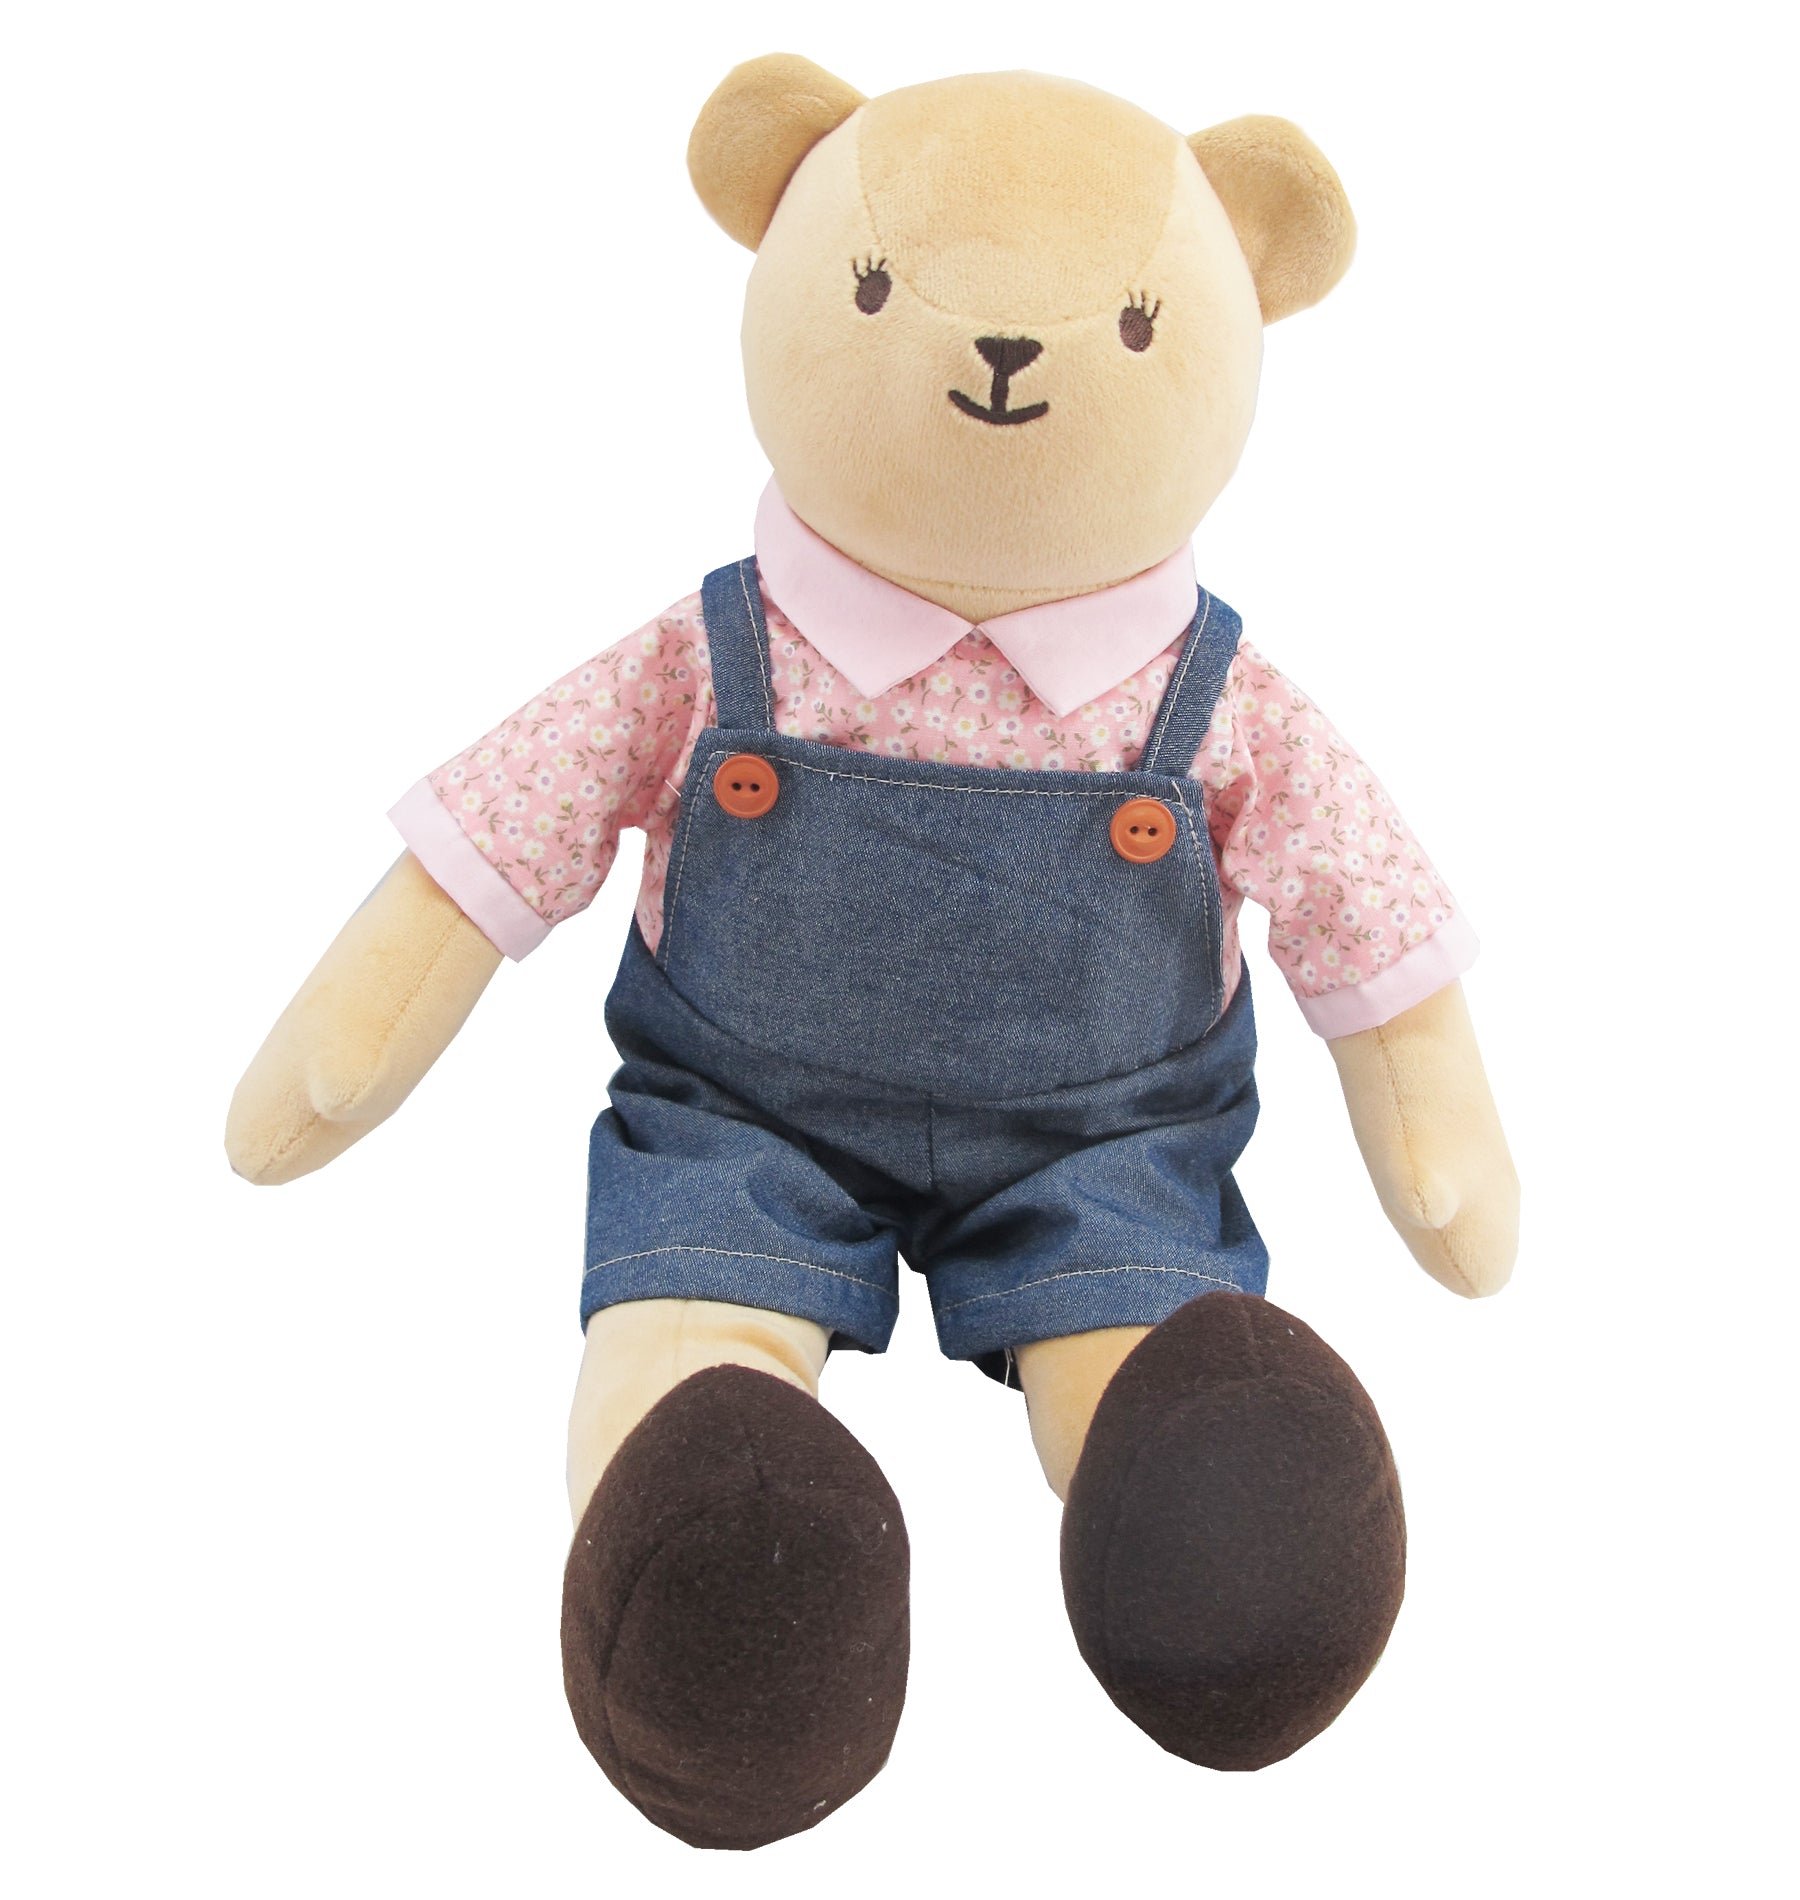 BEAR WITH OUTFITS BOY 16 INCHI M COLLECTION